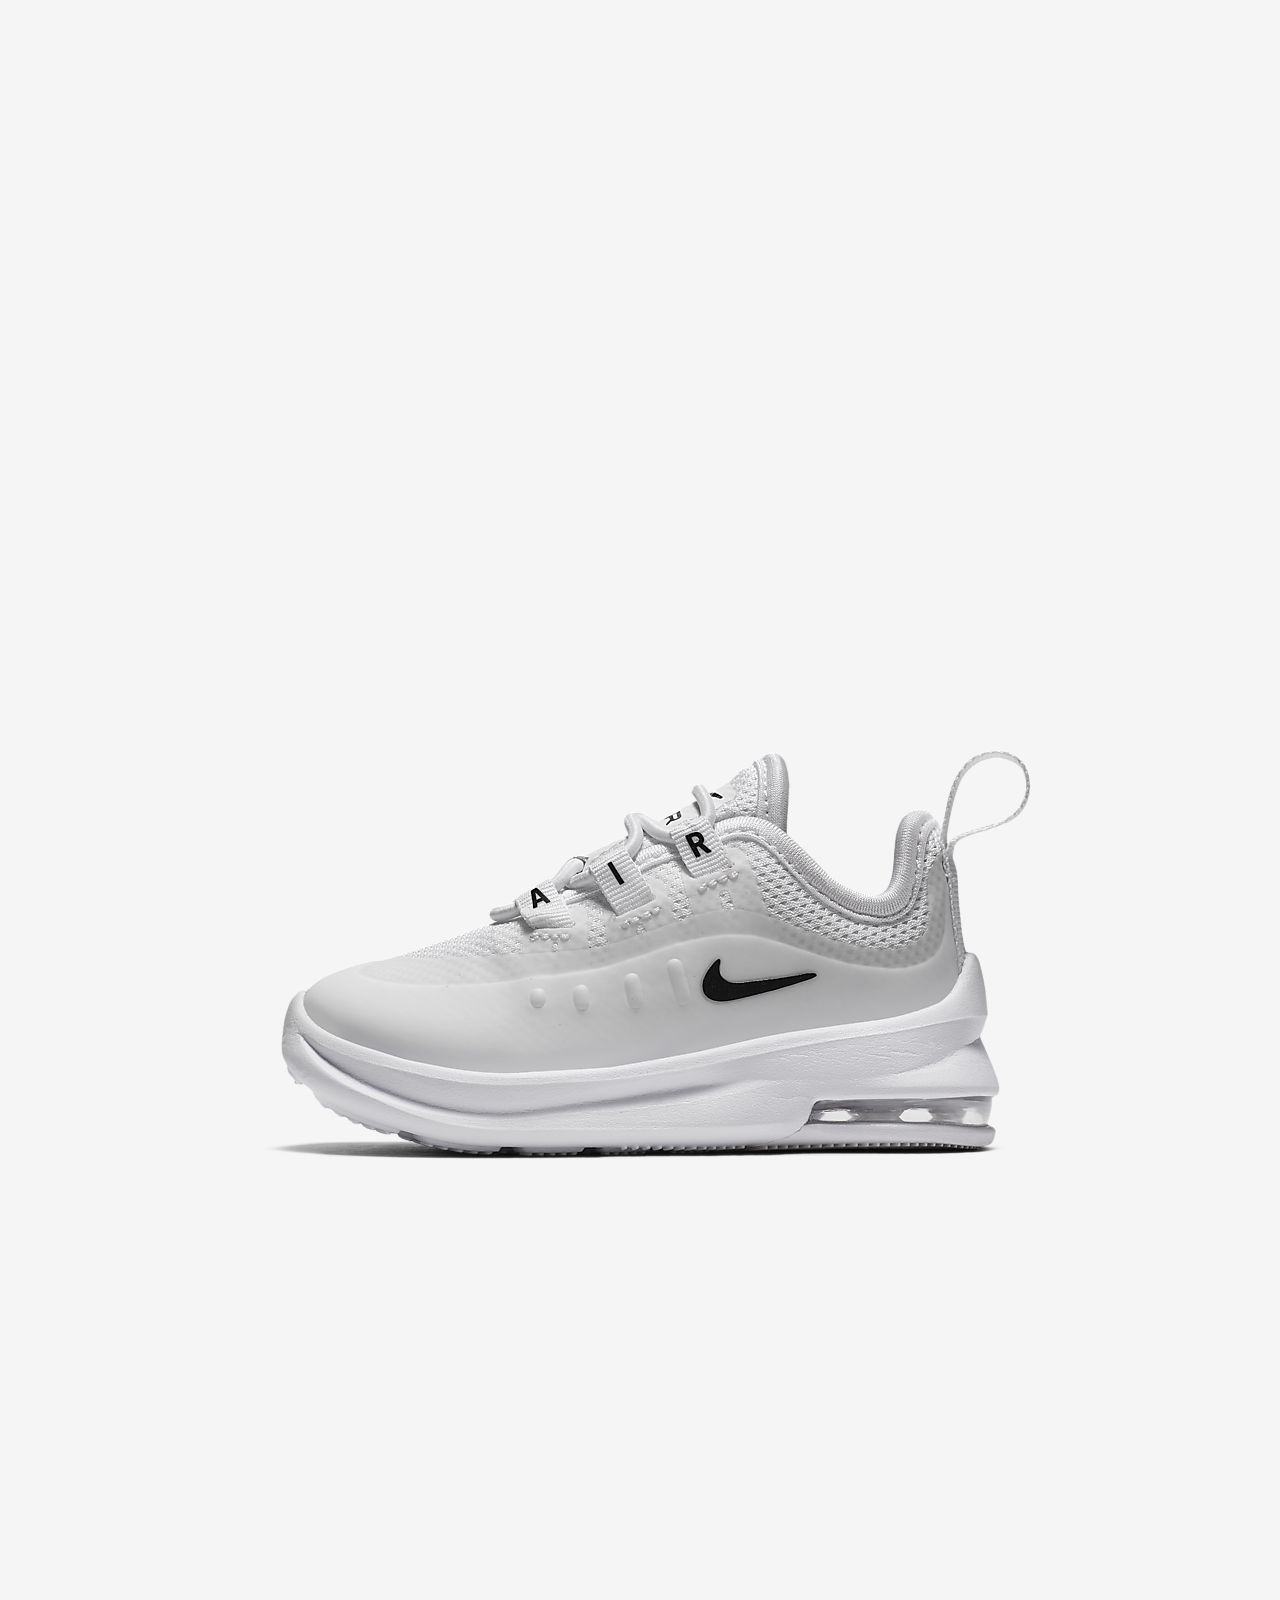 Tenis Nike Air Max Axis Branco Jr, comprar Tenis Nike Air